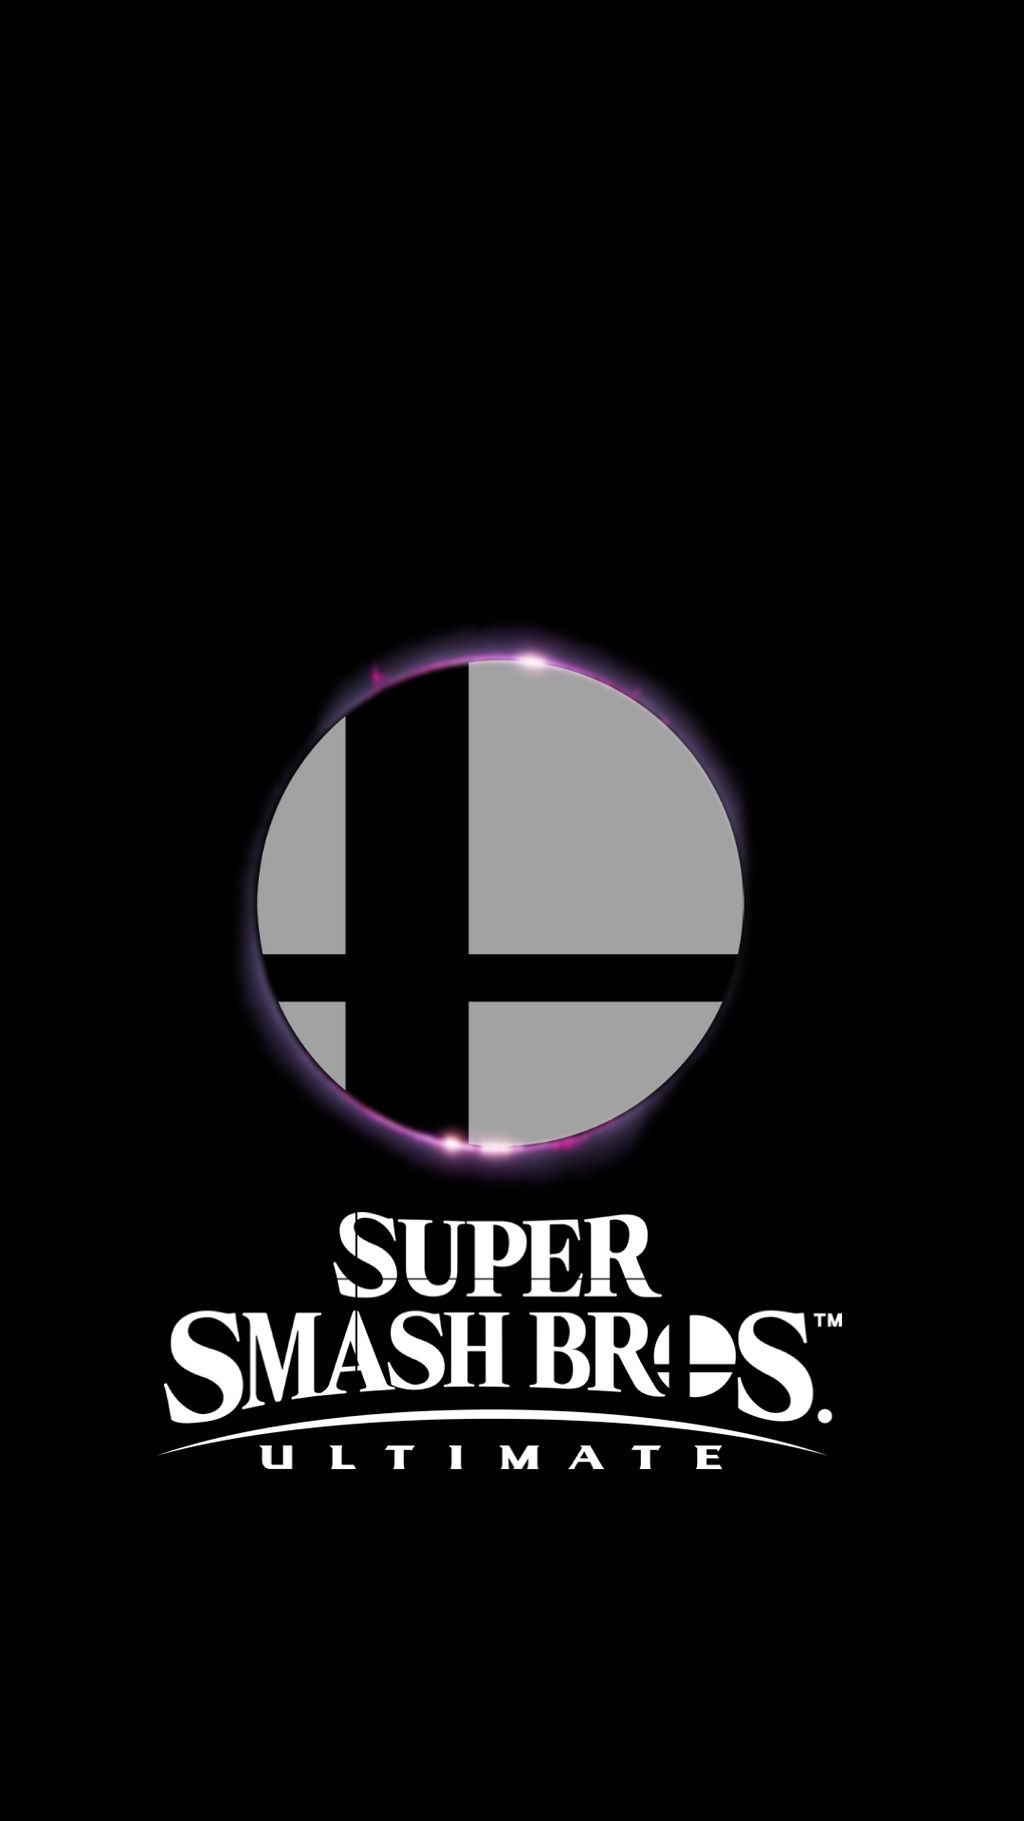 Super Smash Bros Ultimate Mobile Wallpaper 3 By